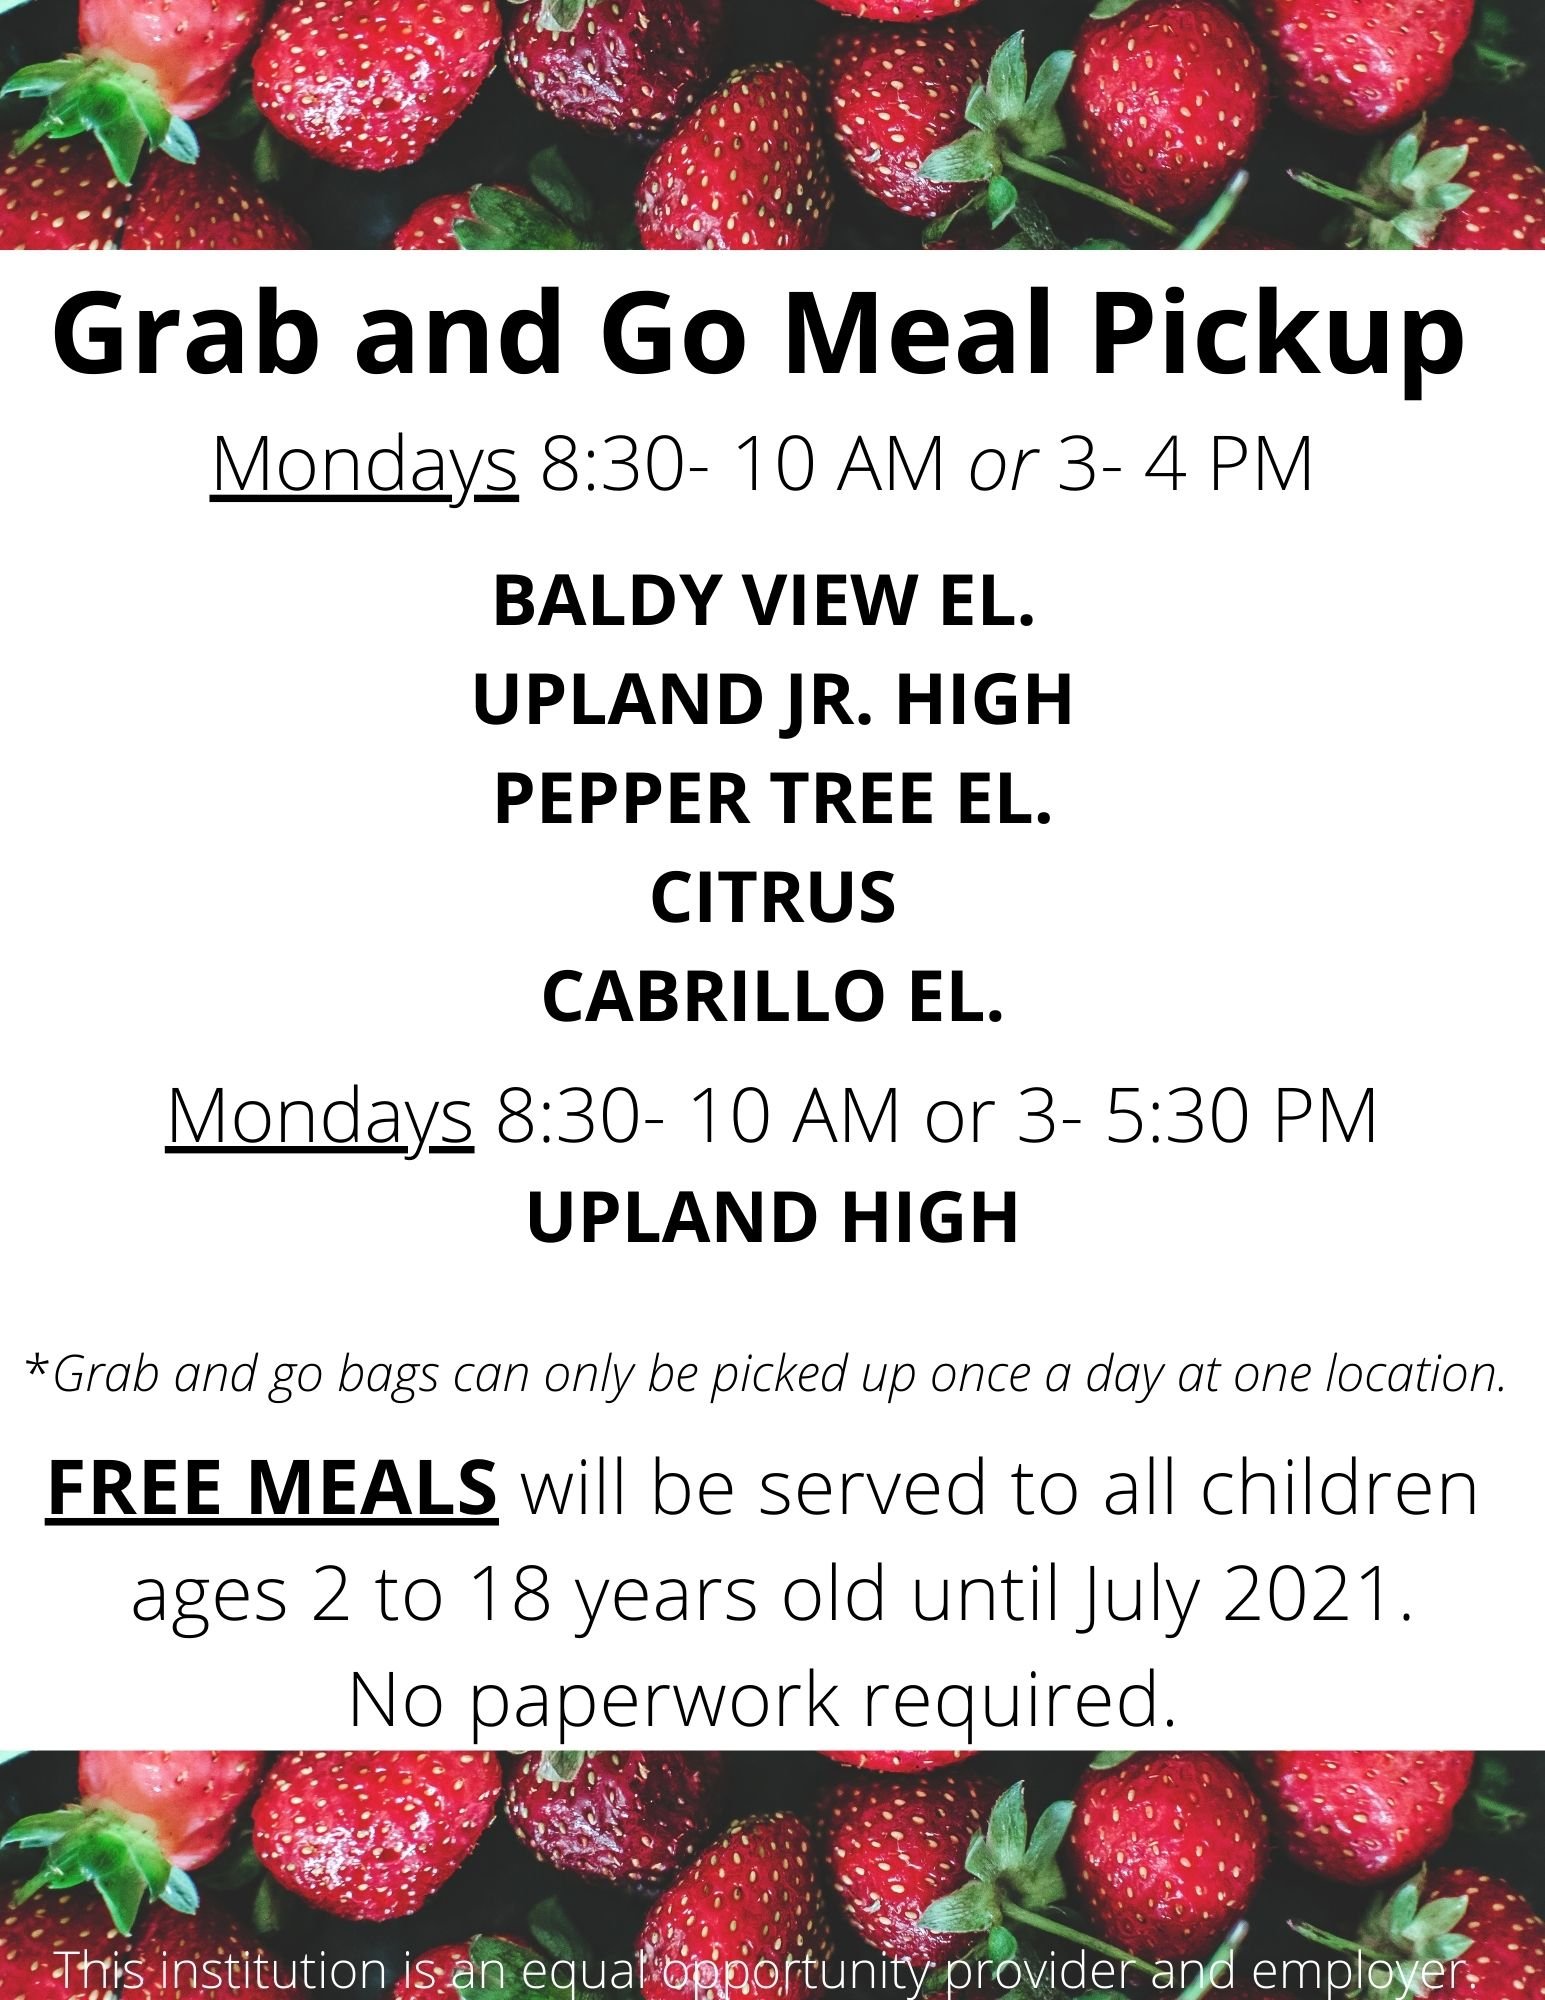 Grab and Go Meal Pickup Mondays 8_30- 10 AM 3- 5_30 PM at the following sites_ UPLAND HIGH UPLAND JR. HIGH PIONEER JR. HIGH PEPPER TREE ELEMENTARY CITRUS ELEMENTARY BALDY VIEW ELEMENTARY CABRILLO ELEMENTARY _Gr (1).jpg